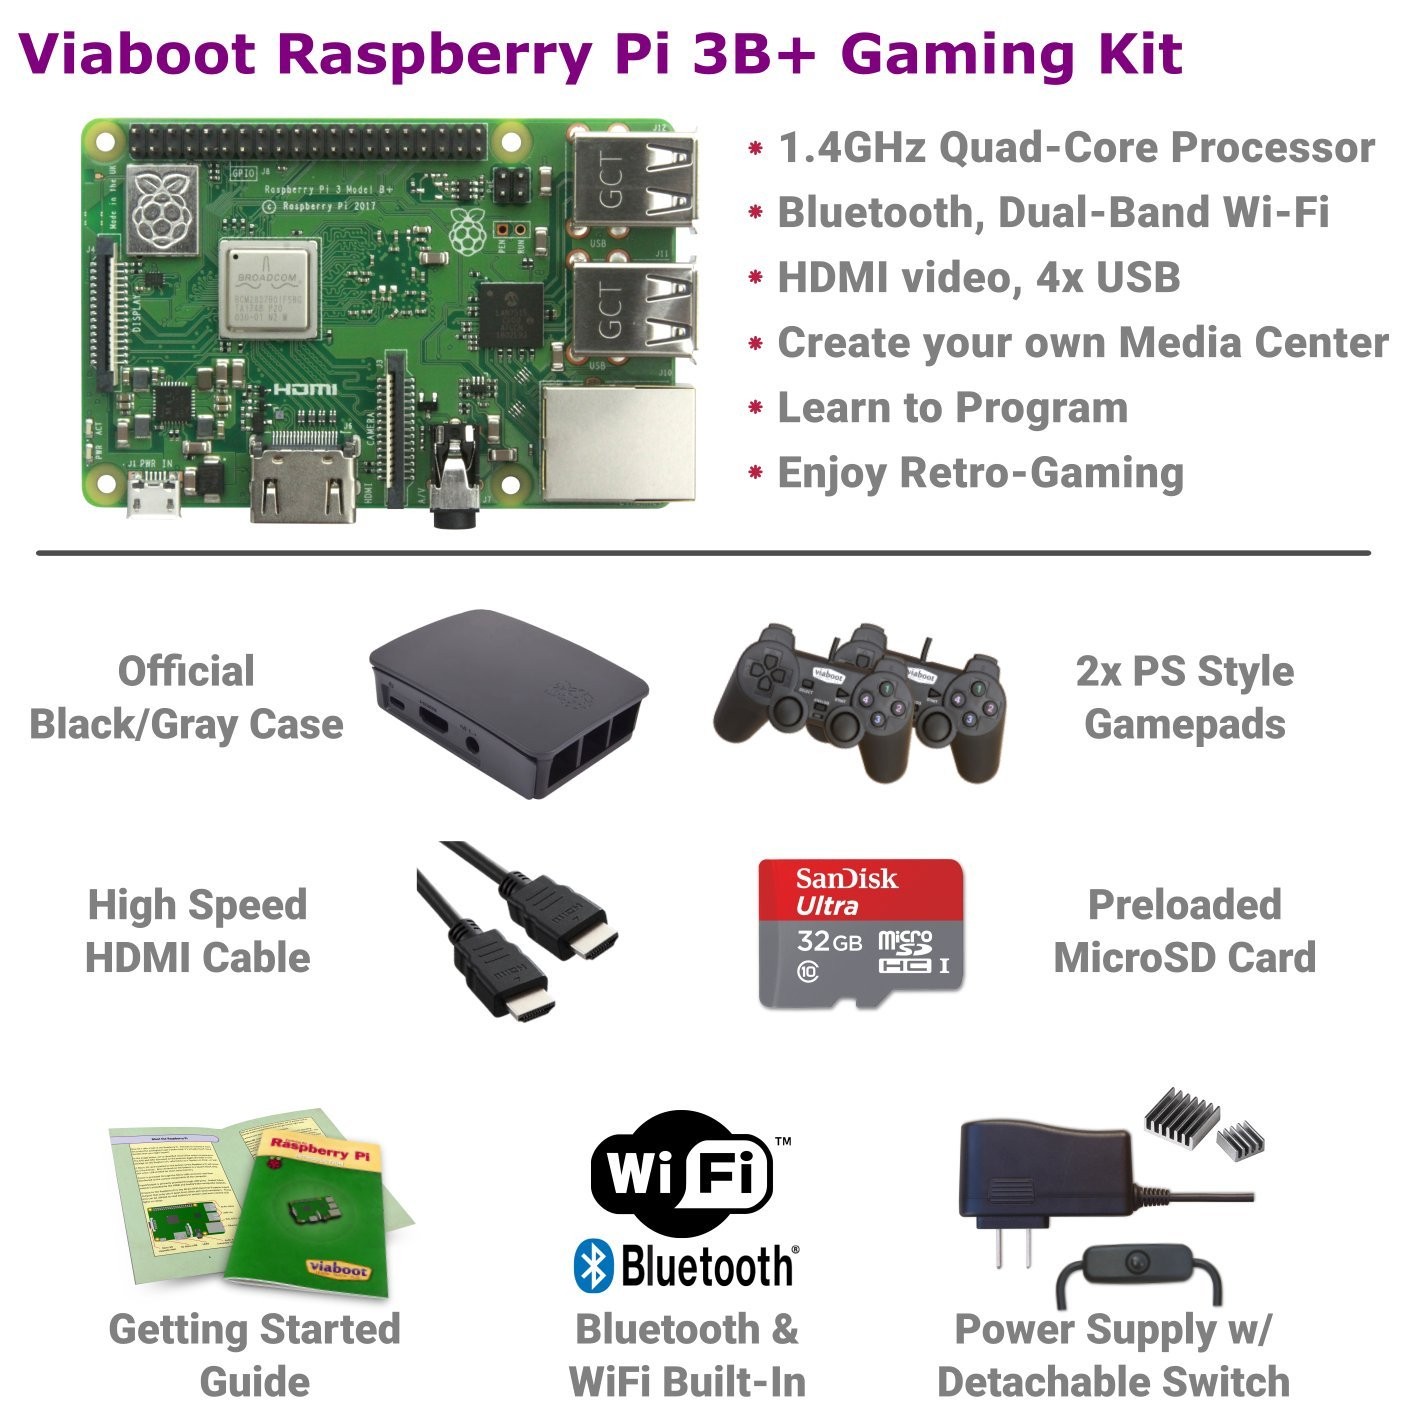 Viaboot Raspberry Pi 3 B+ Gaming Kit — Official 32GB MicroSD Card, Official Rasbperry Pi Foundation Black/Gray Case, PS Edition by Viaboot (Image #2)